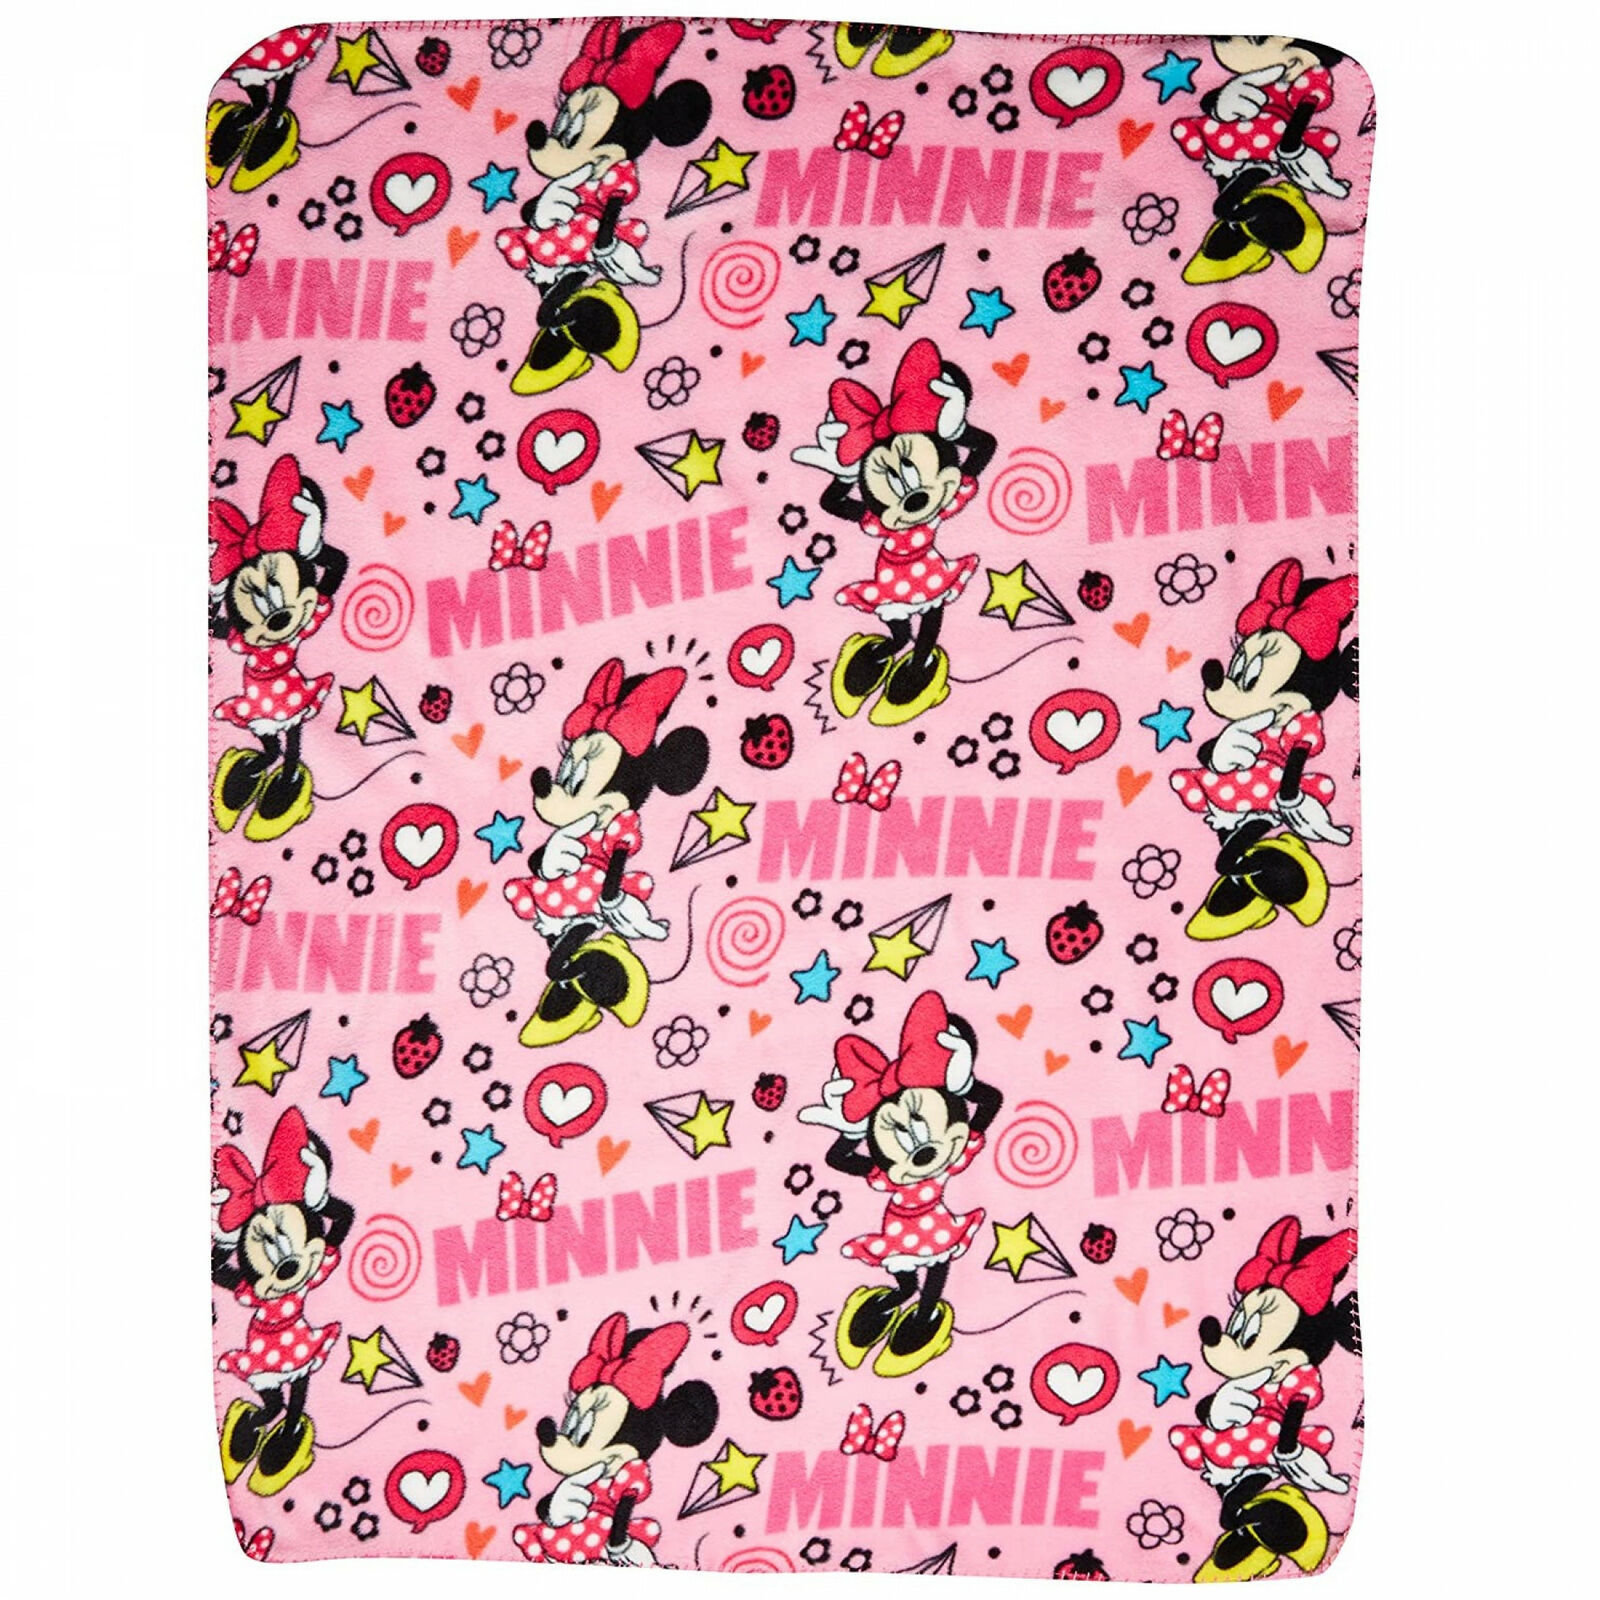 Disney Minnie Mouse Character Doodles Throw Blanket Pink - $36.98